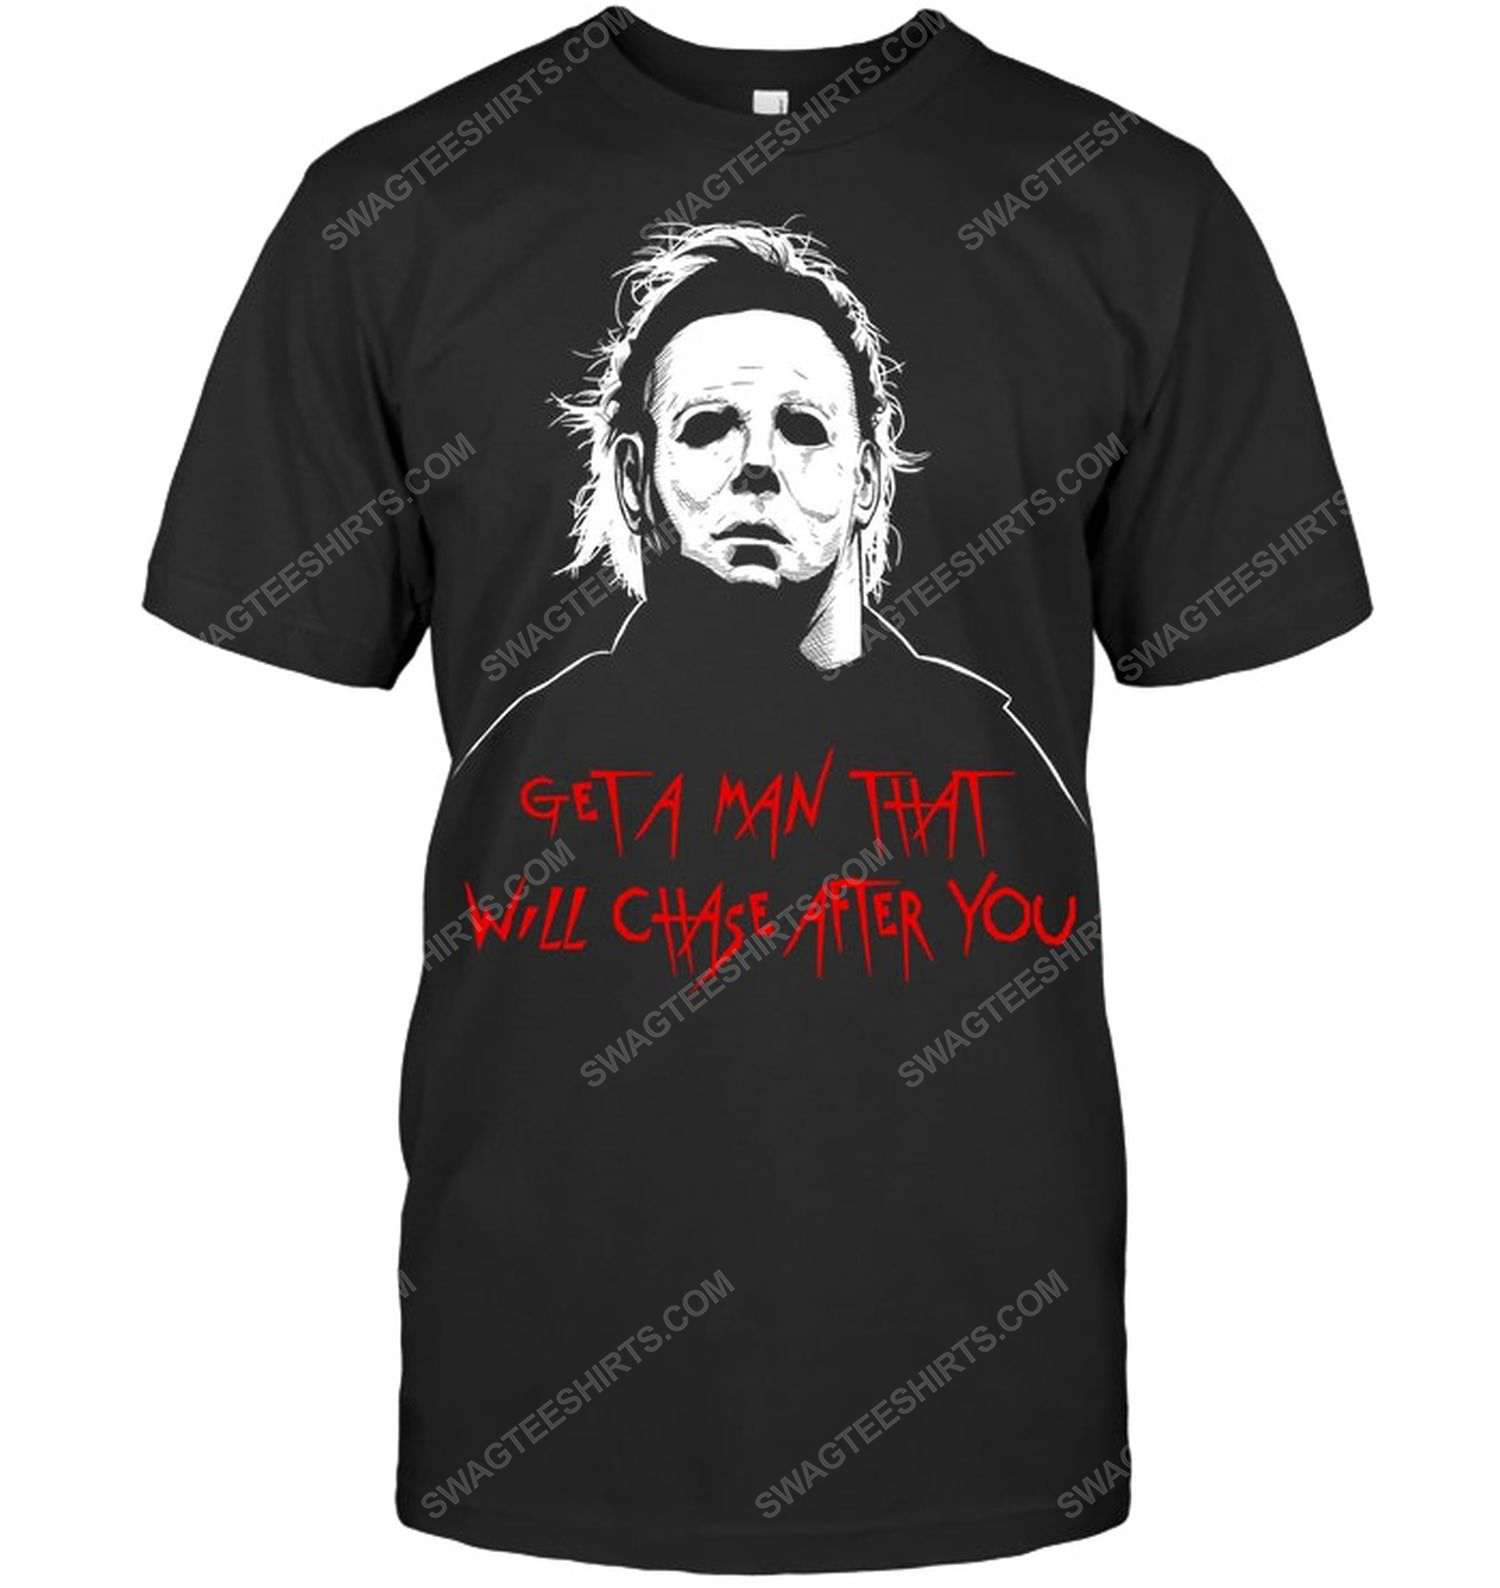 Michael myers halloween get a man that will chase after you shirt 1